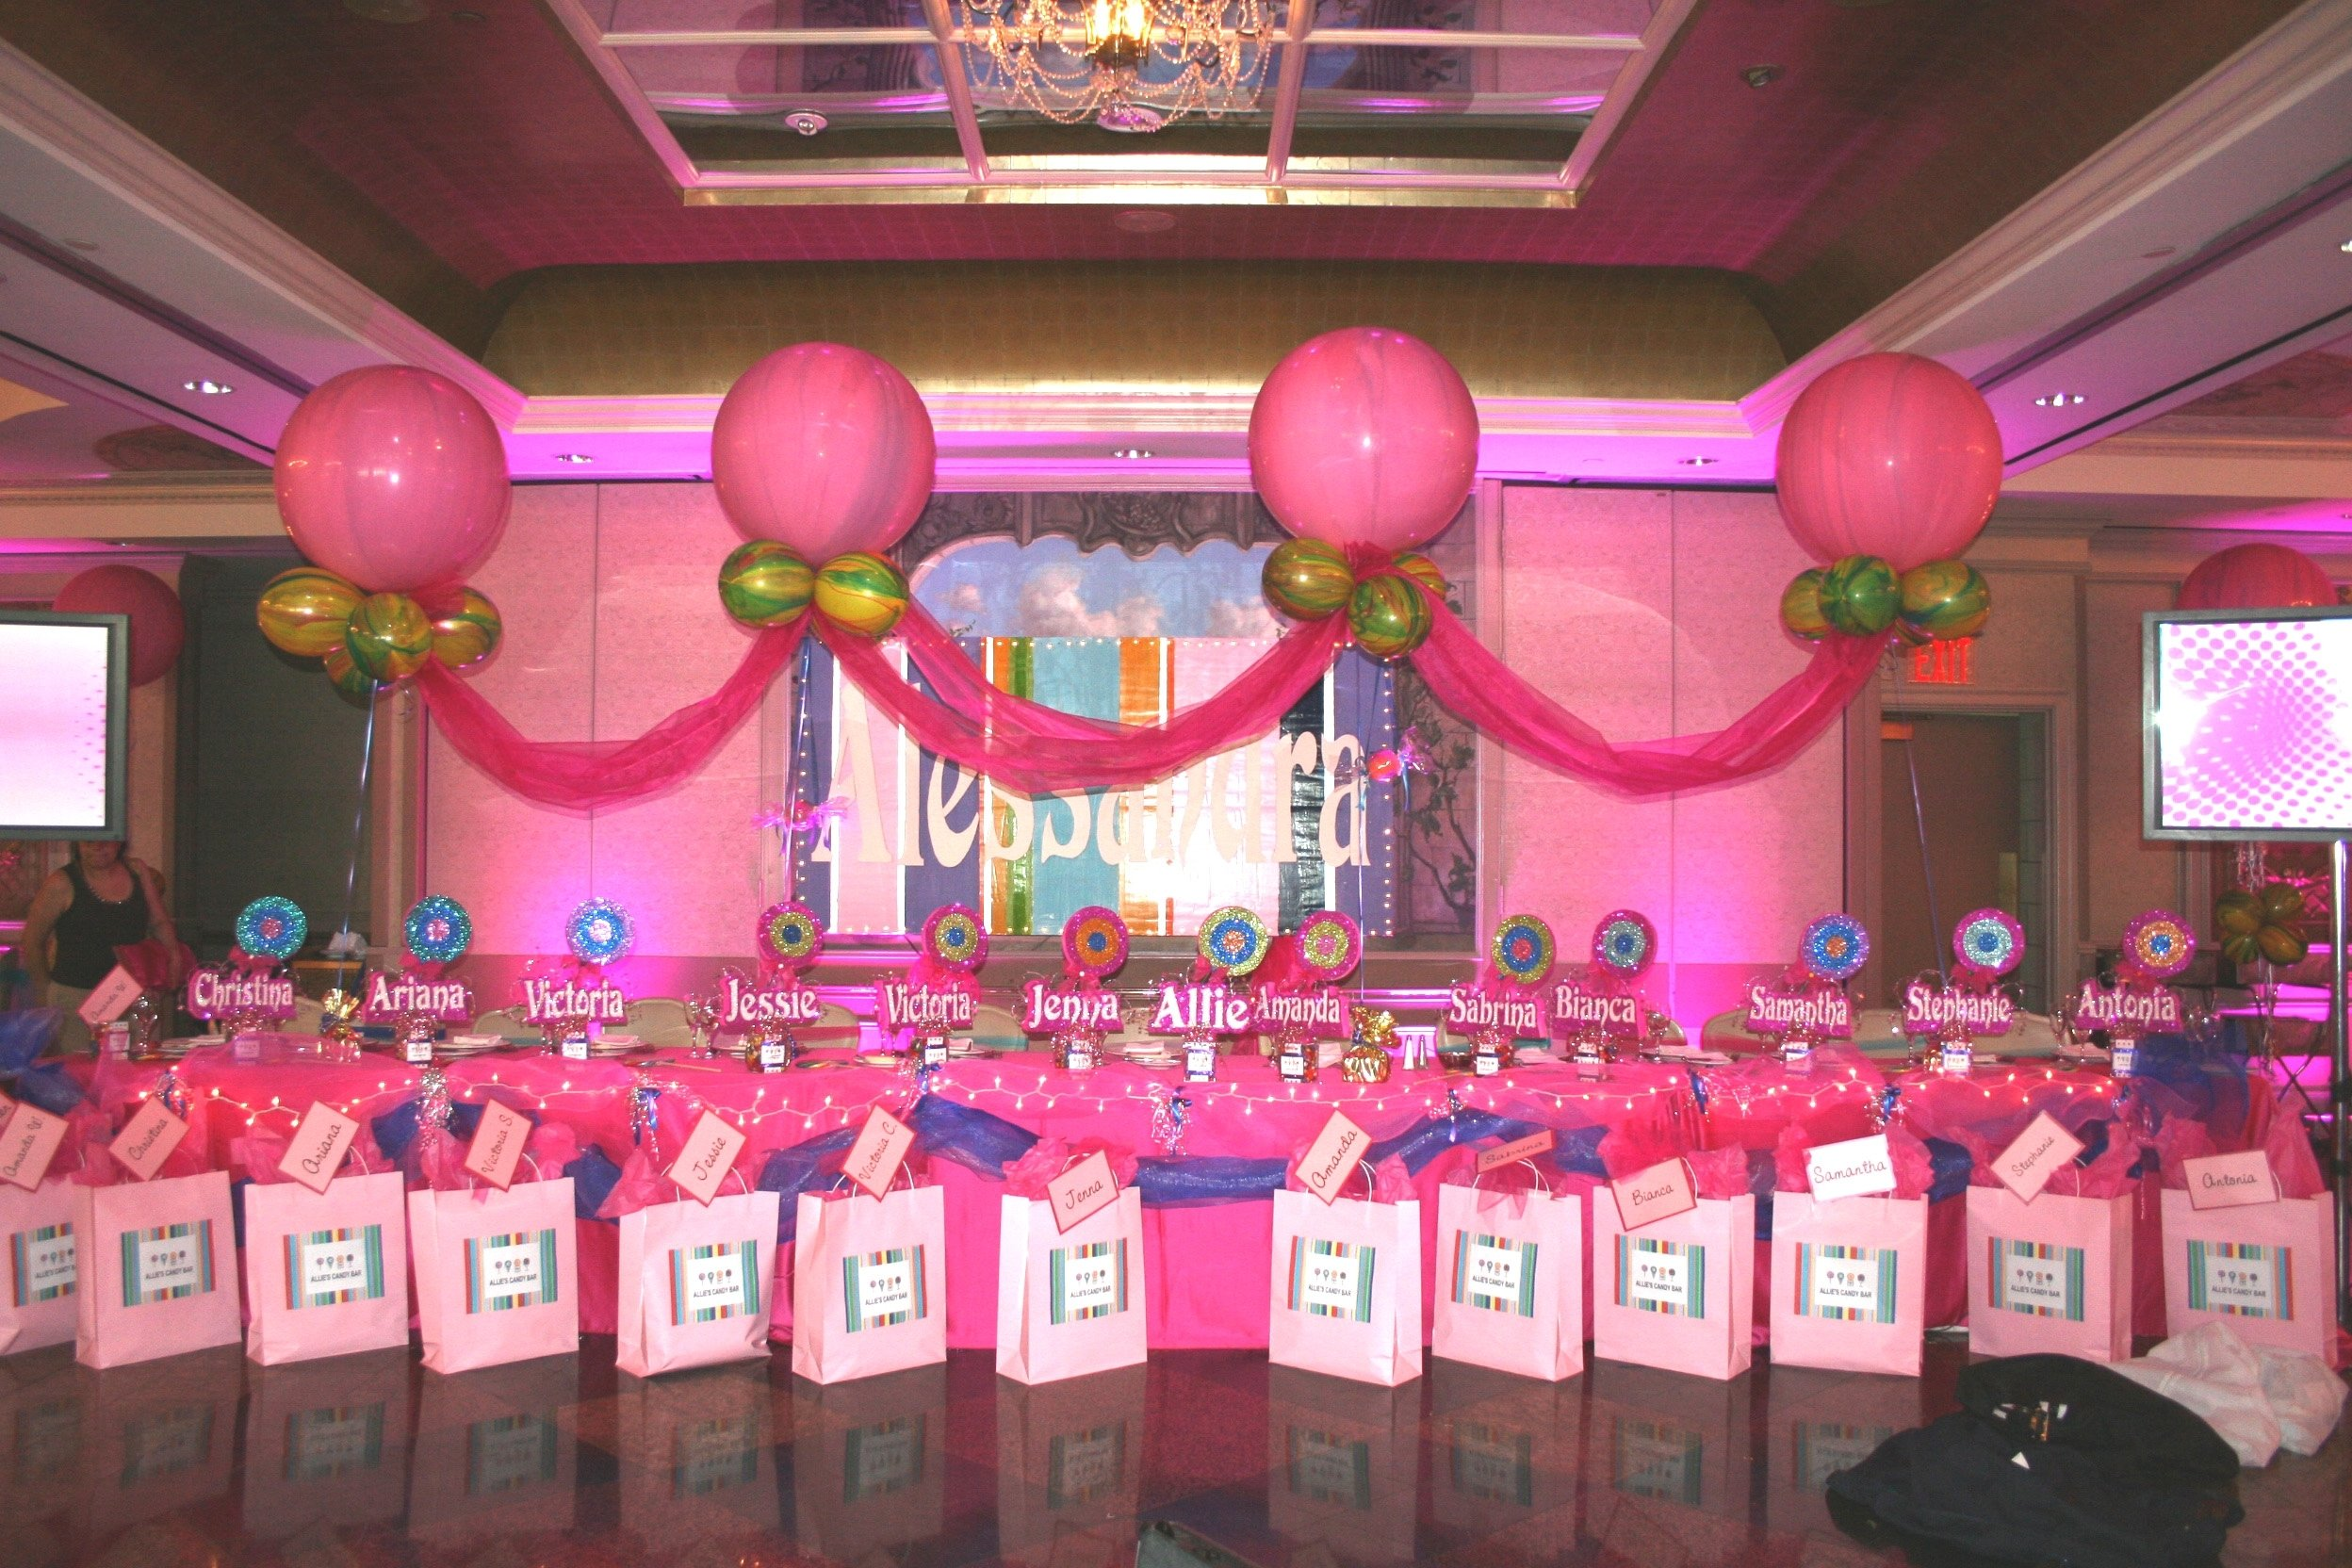 10 Fantastic Sweet 16 Birthday Party Ideas images about my sweet sixteen ideas on pinterest and 16th birthday 5 2021